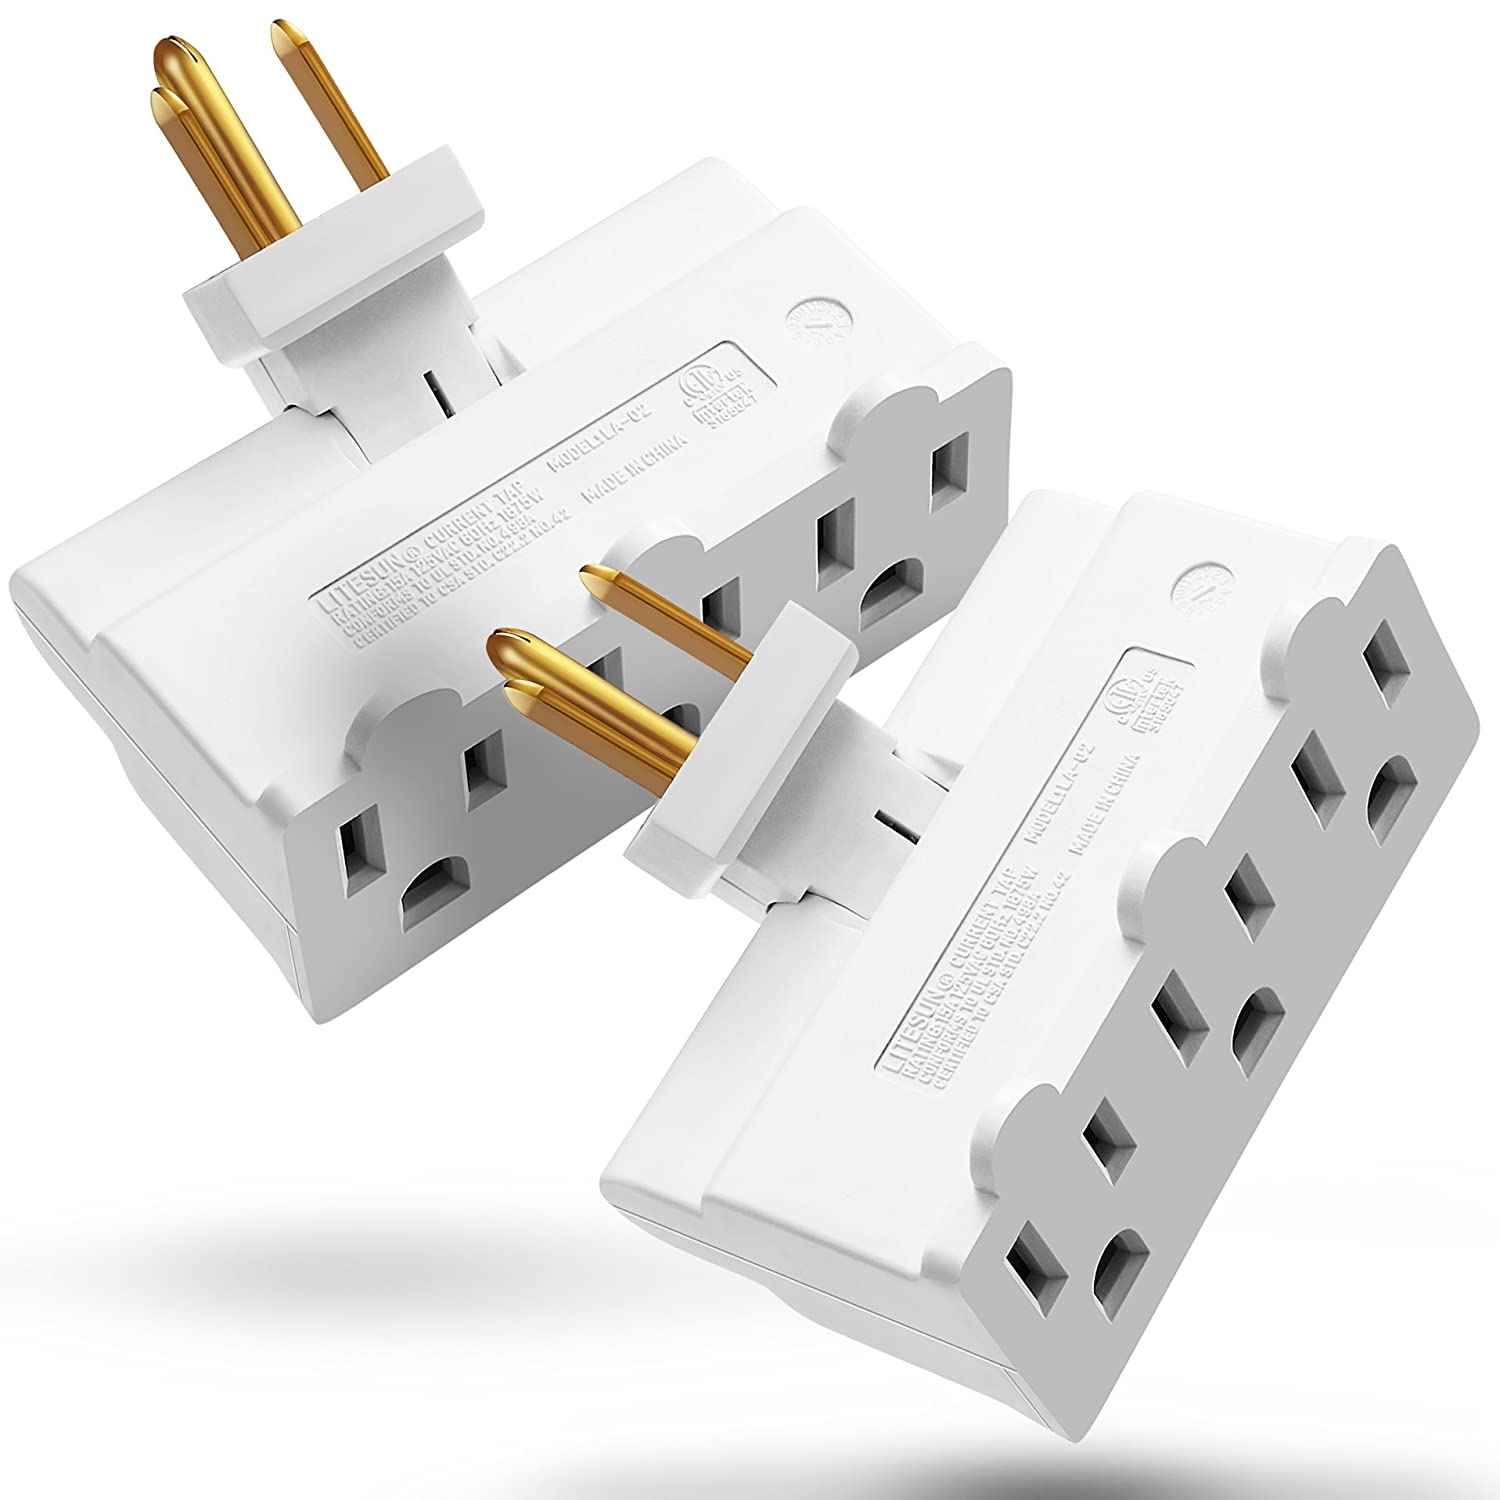 3 Outlet Wall Adapter Tap, Fosmon 3-Prong Swivel Grounded Indoor AC Mini Plug, ETL Listed - White